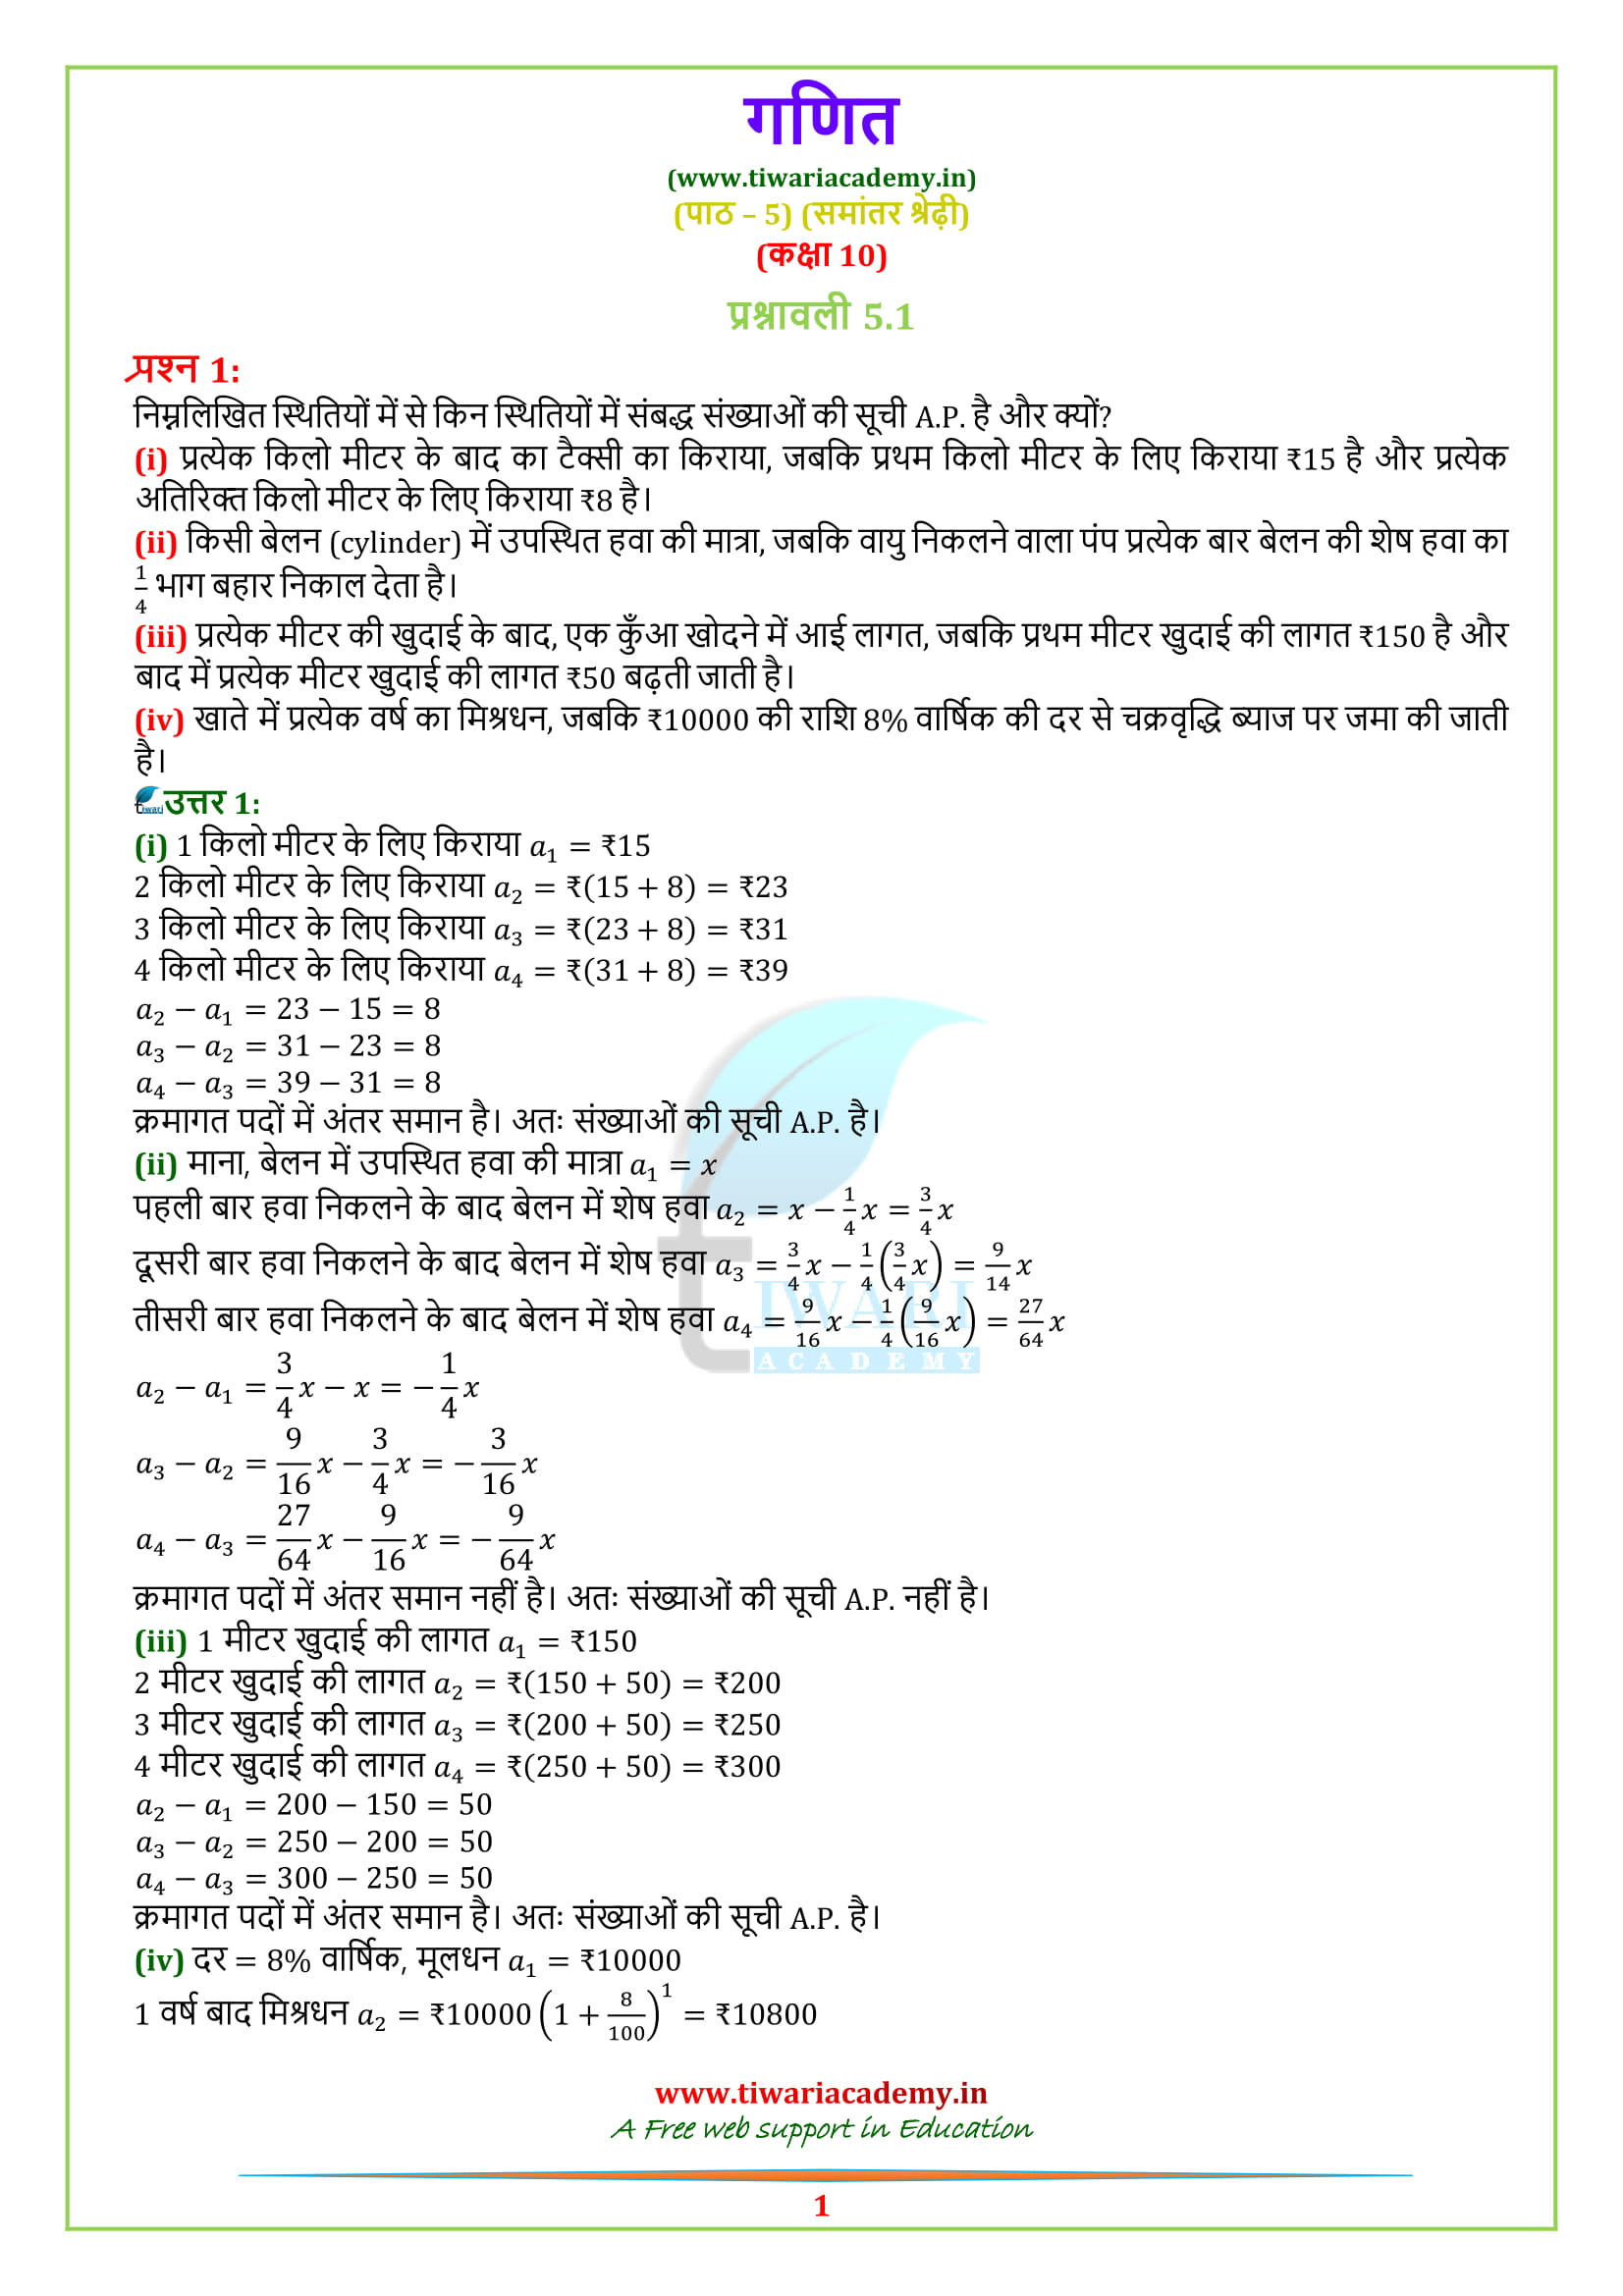 Class 10 Maths Exercise 5.1 Question 1, 2, 3, 4, 5